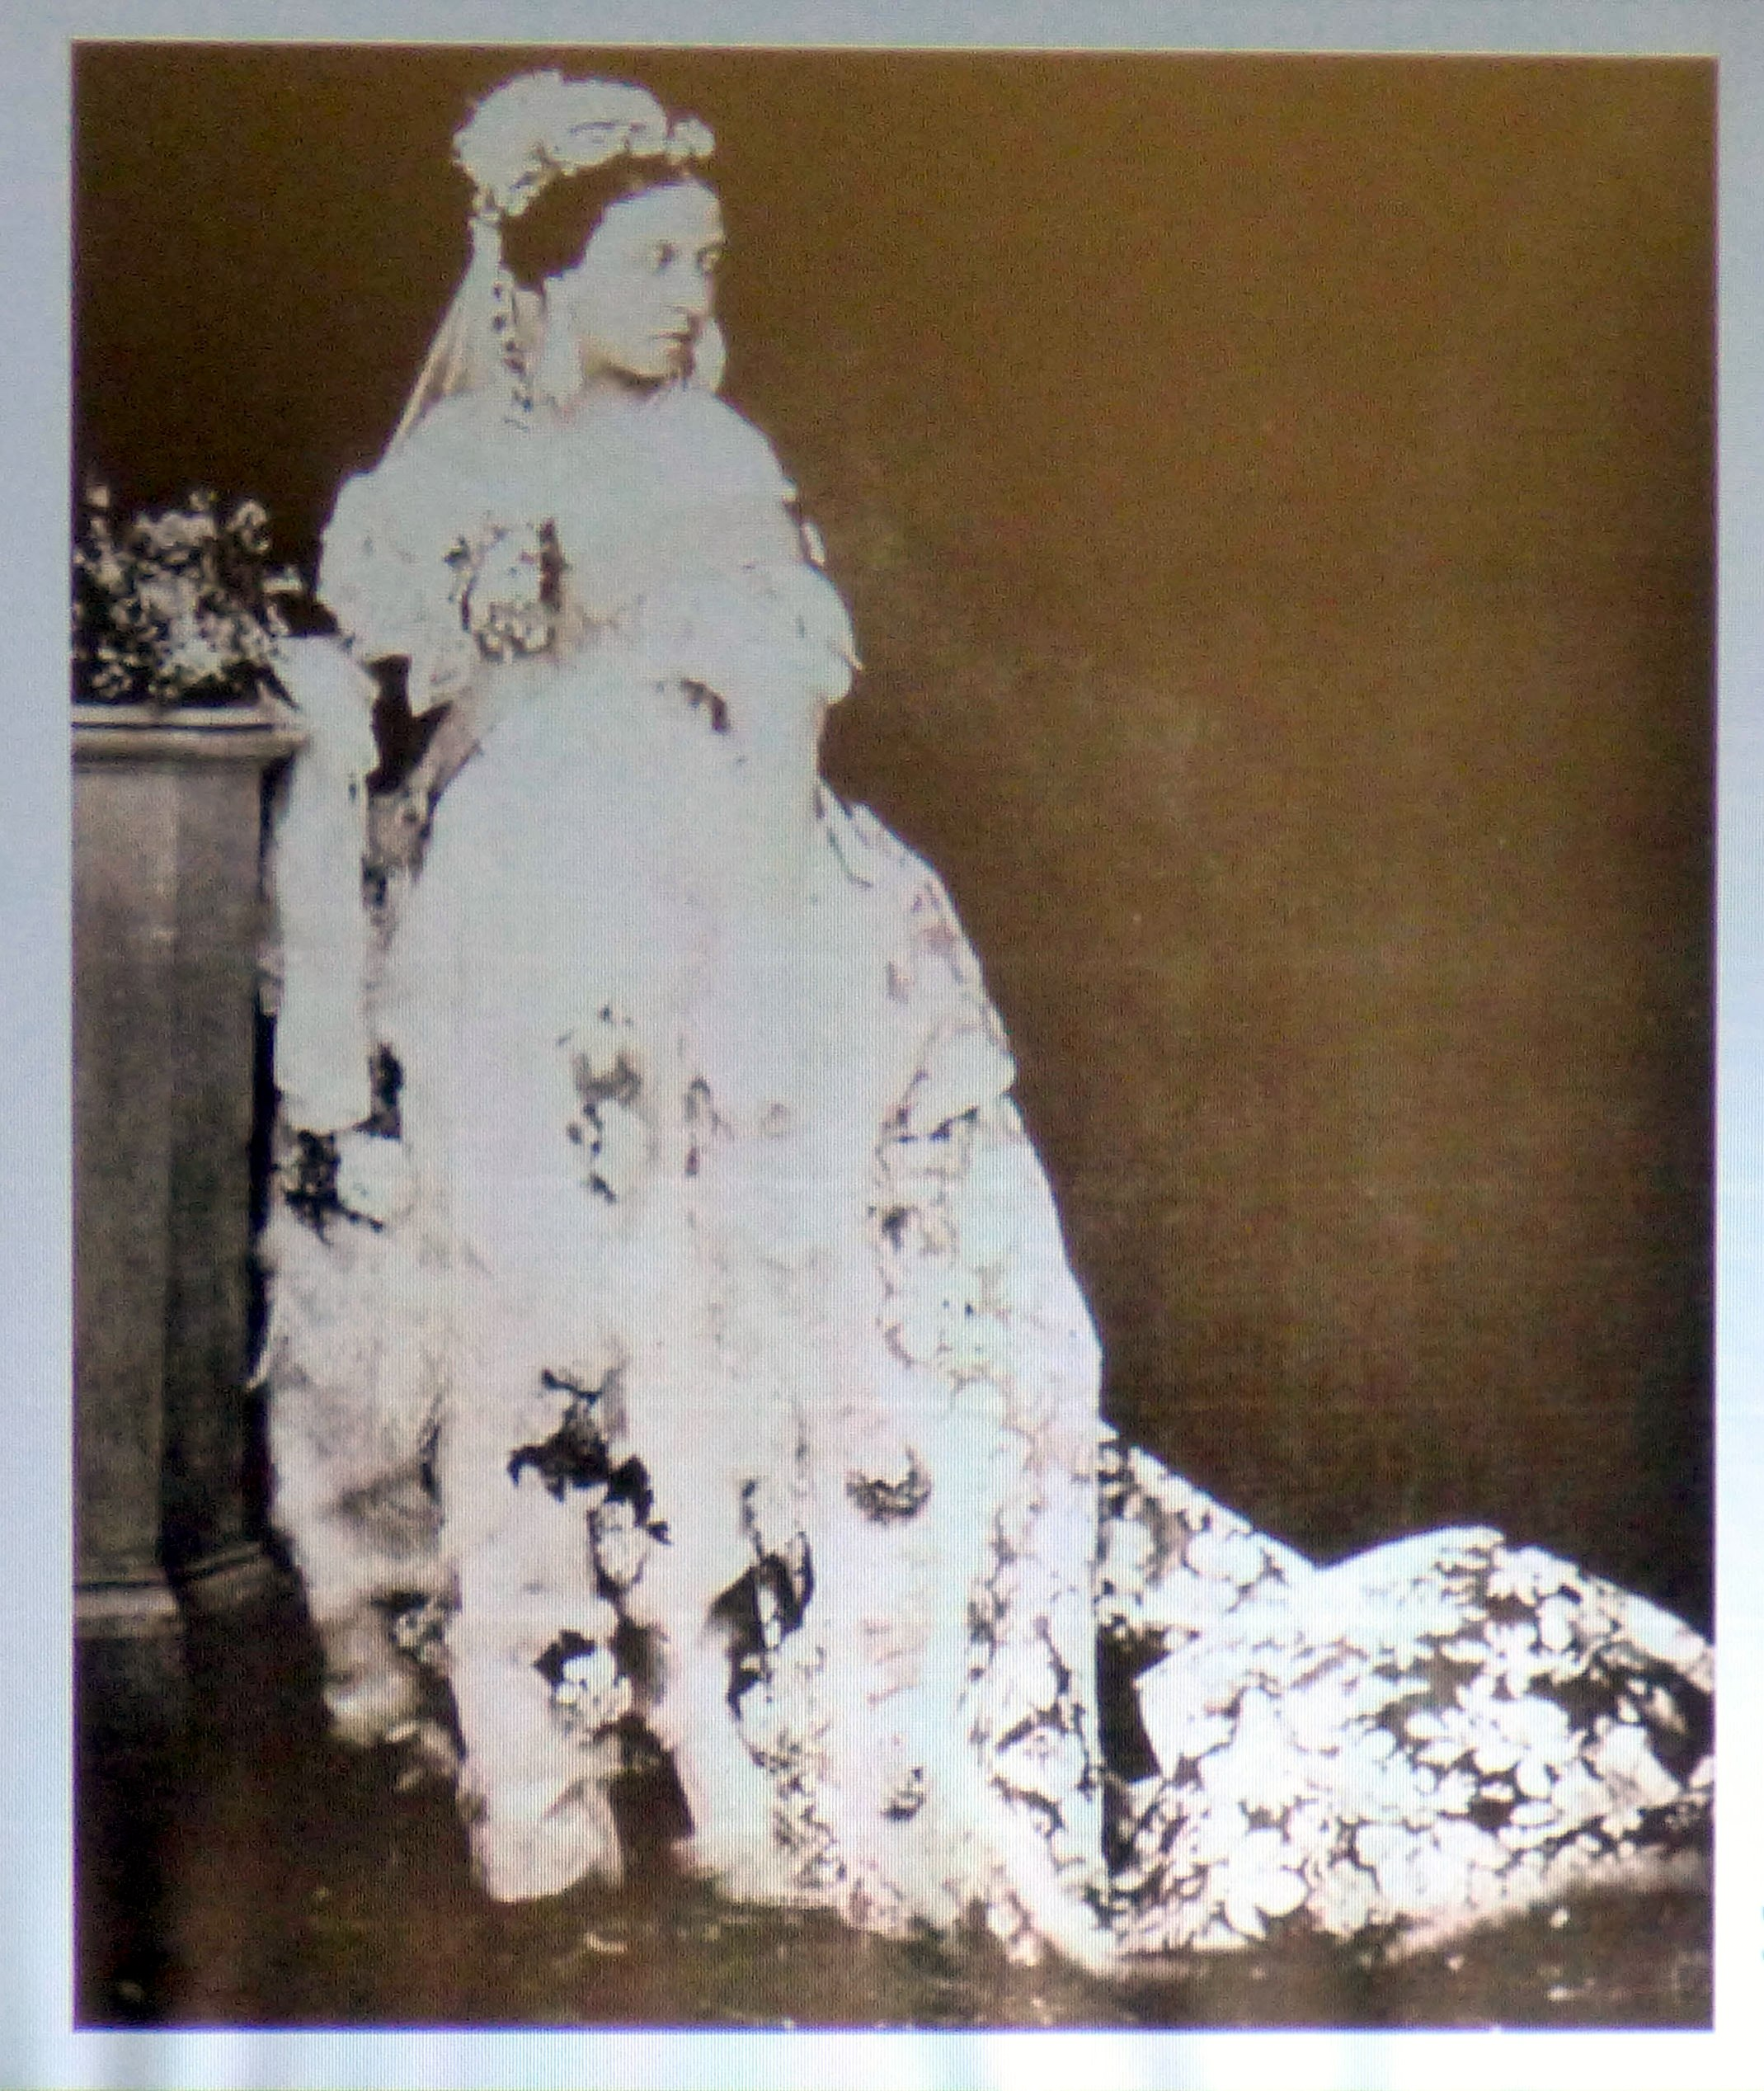 slide showing Queen Victoria photographed on her wedding day